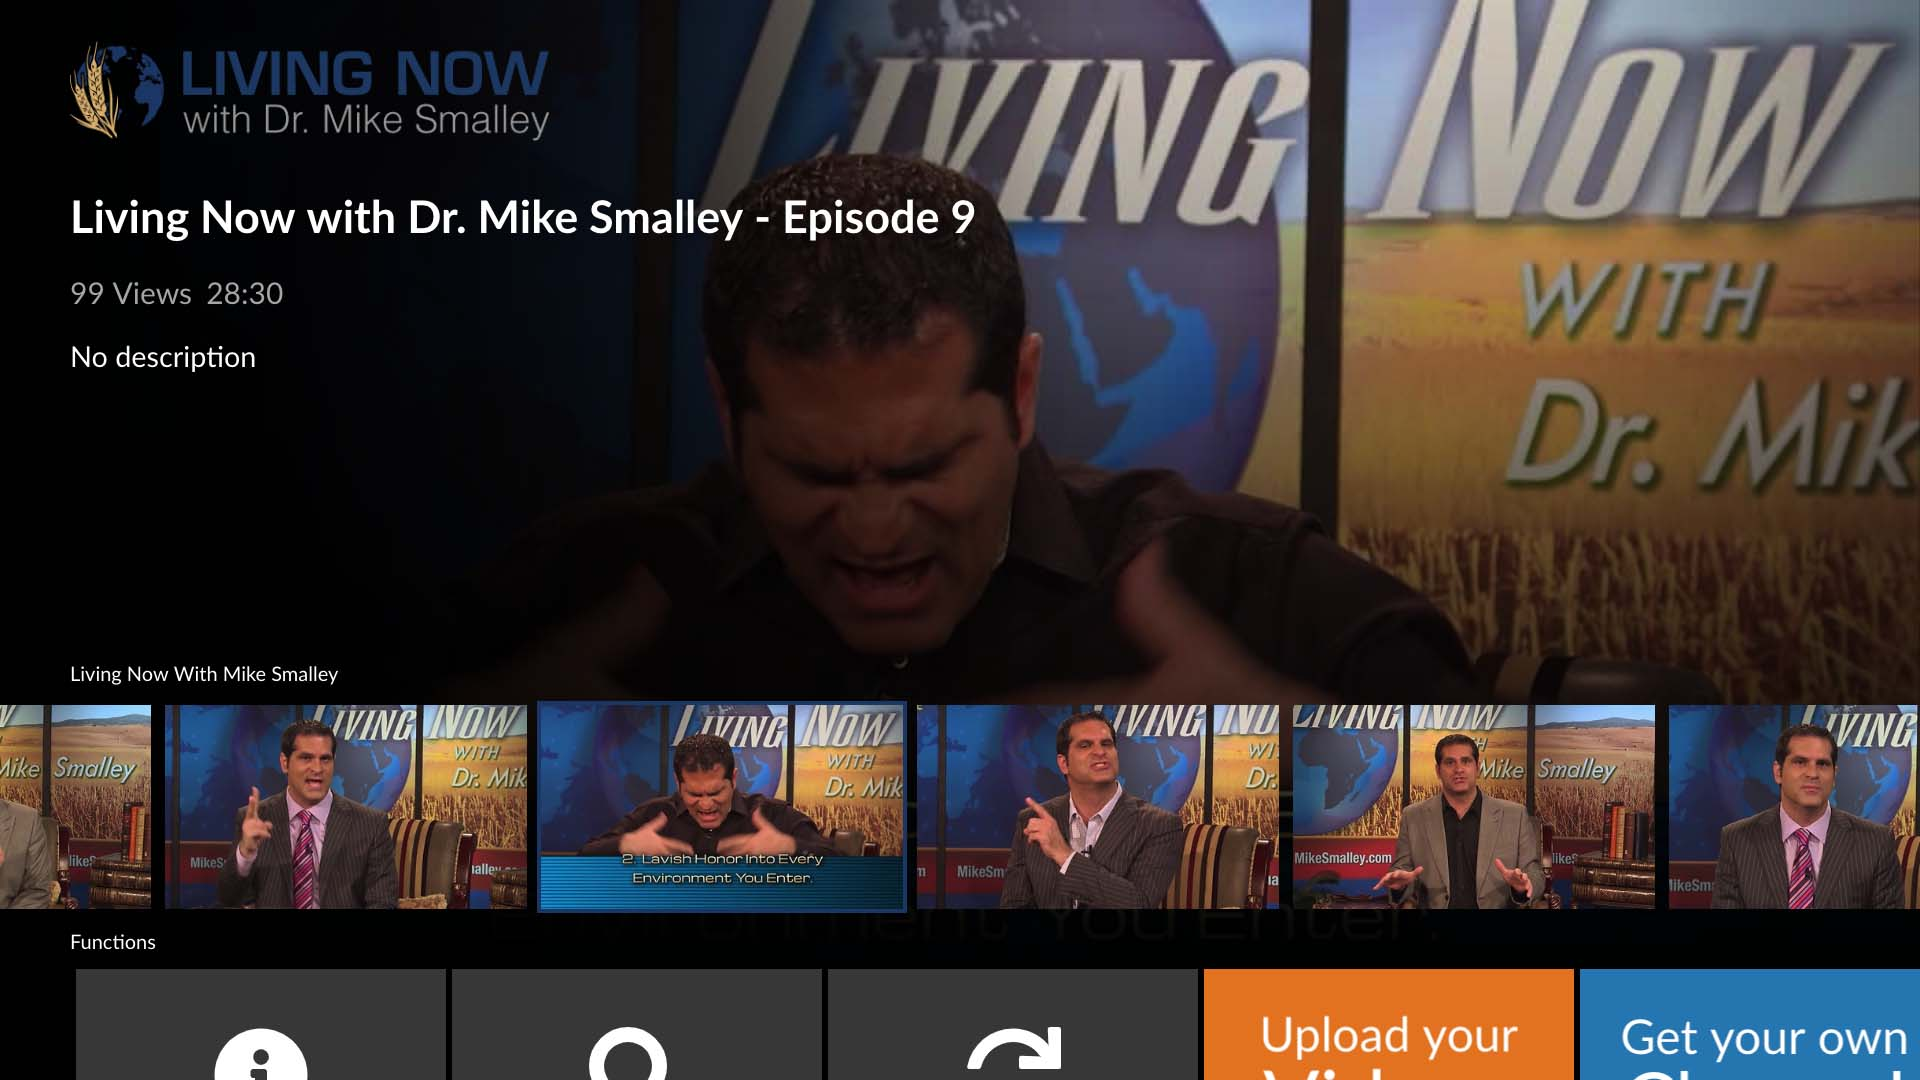 Living Now With Dr Mike Smalley Screenshot 002